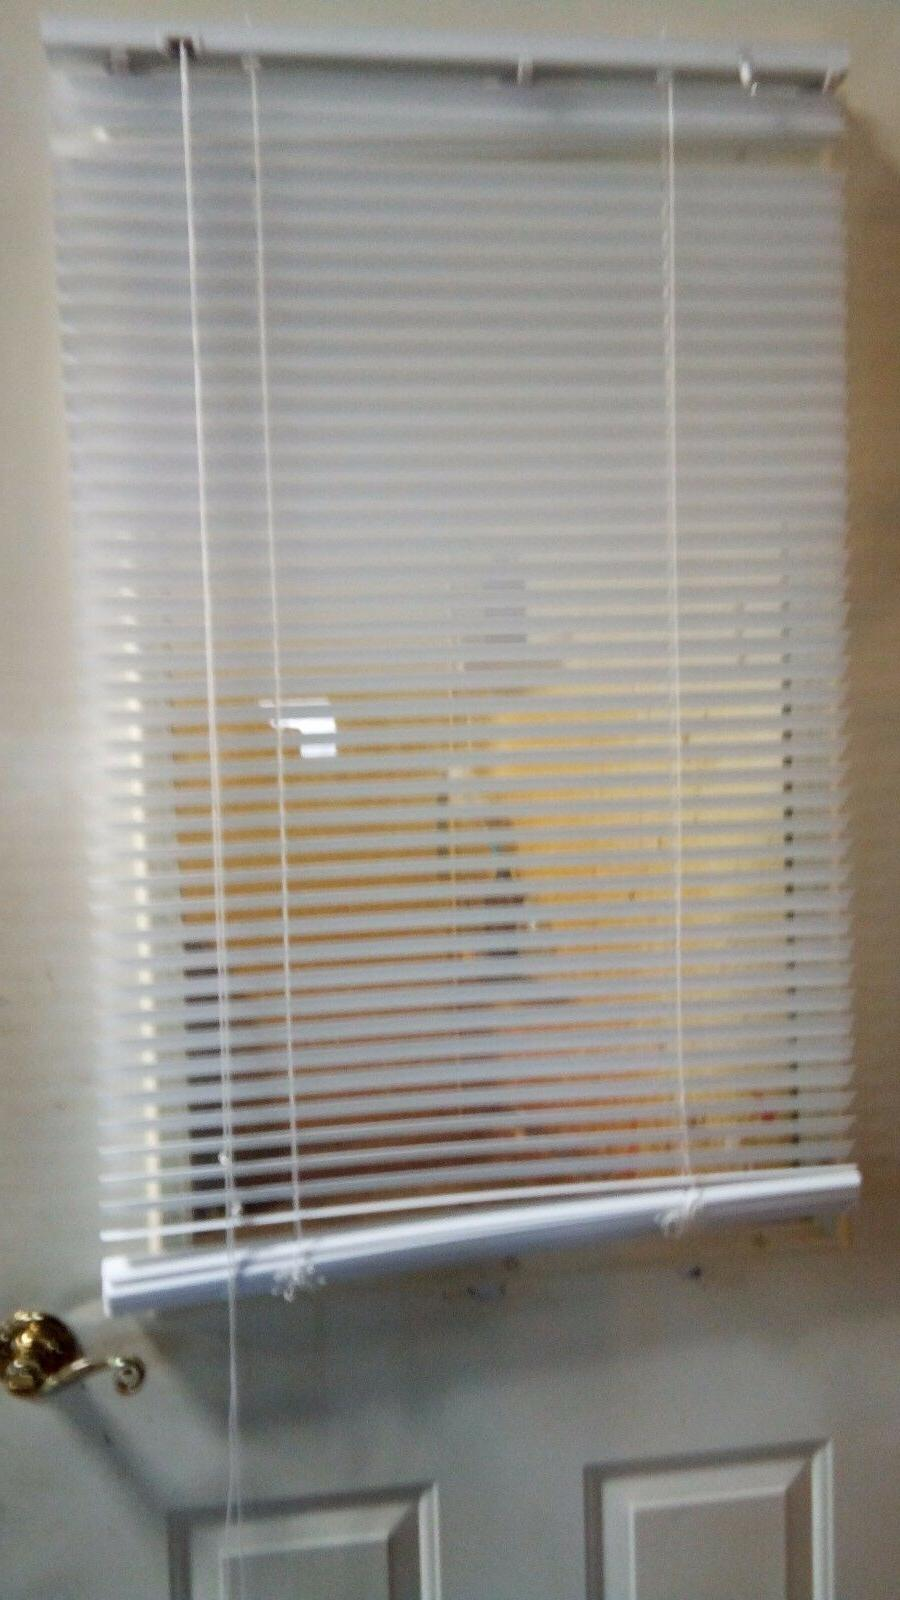 magnetic window blinds 25 x 68 easy